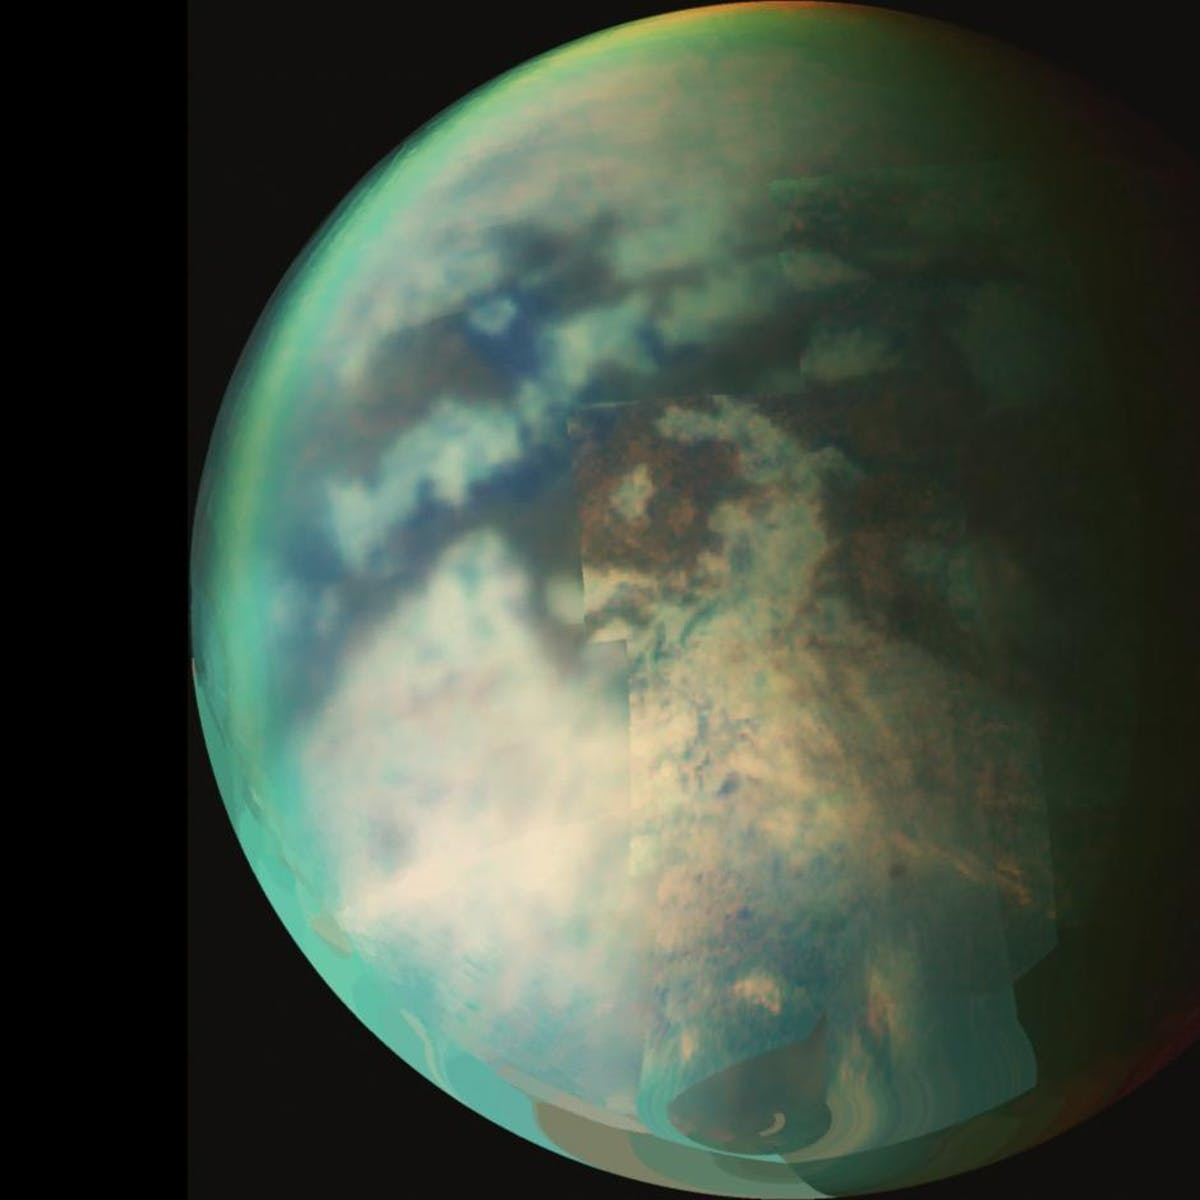 Scientists glimpse Titan's startling terrain for the first time